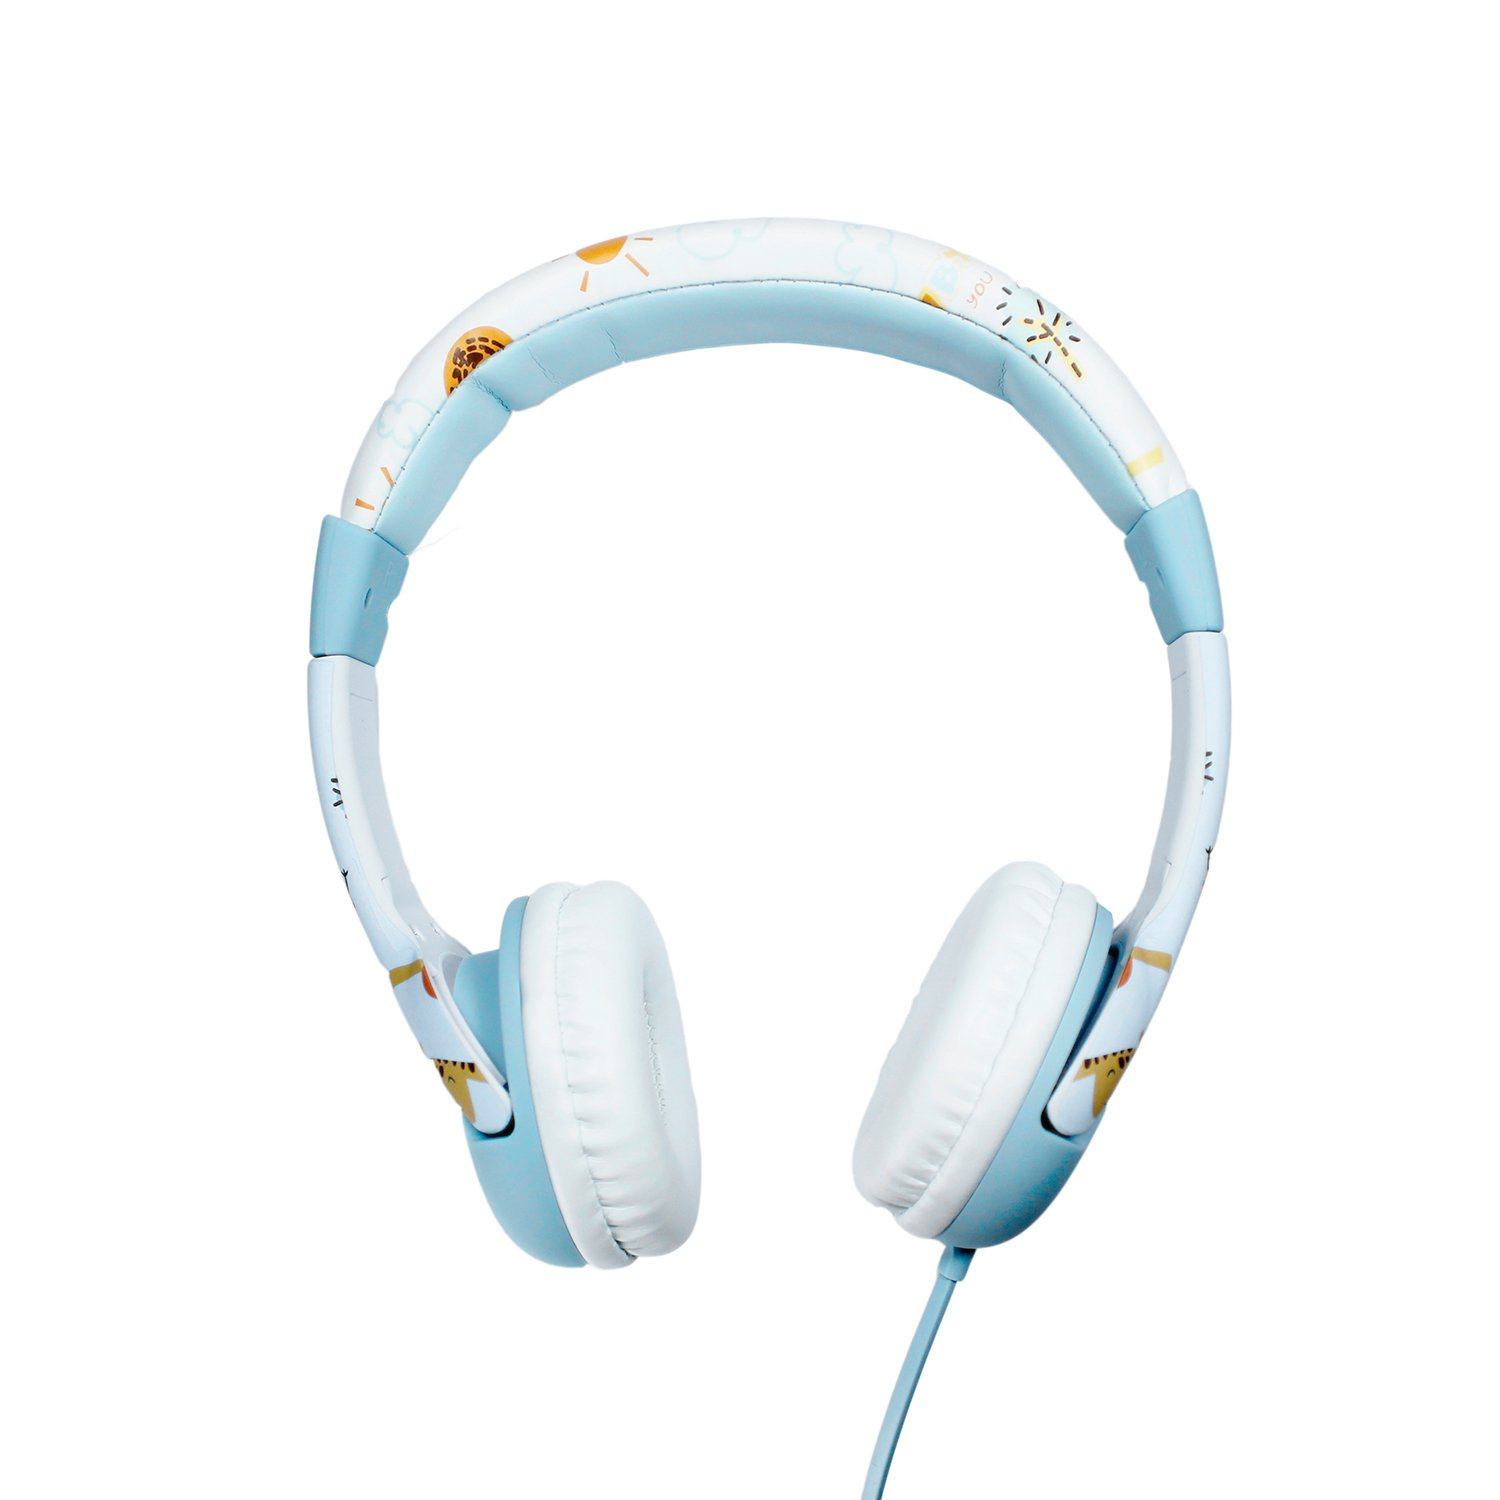 AMALEN Wired Kids Headphones Cartoon Element Adorable Design Over the Ear Headsets with 85 Volume Limited, Food Grade Silicon Material